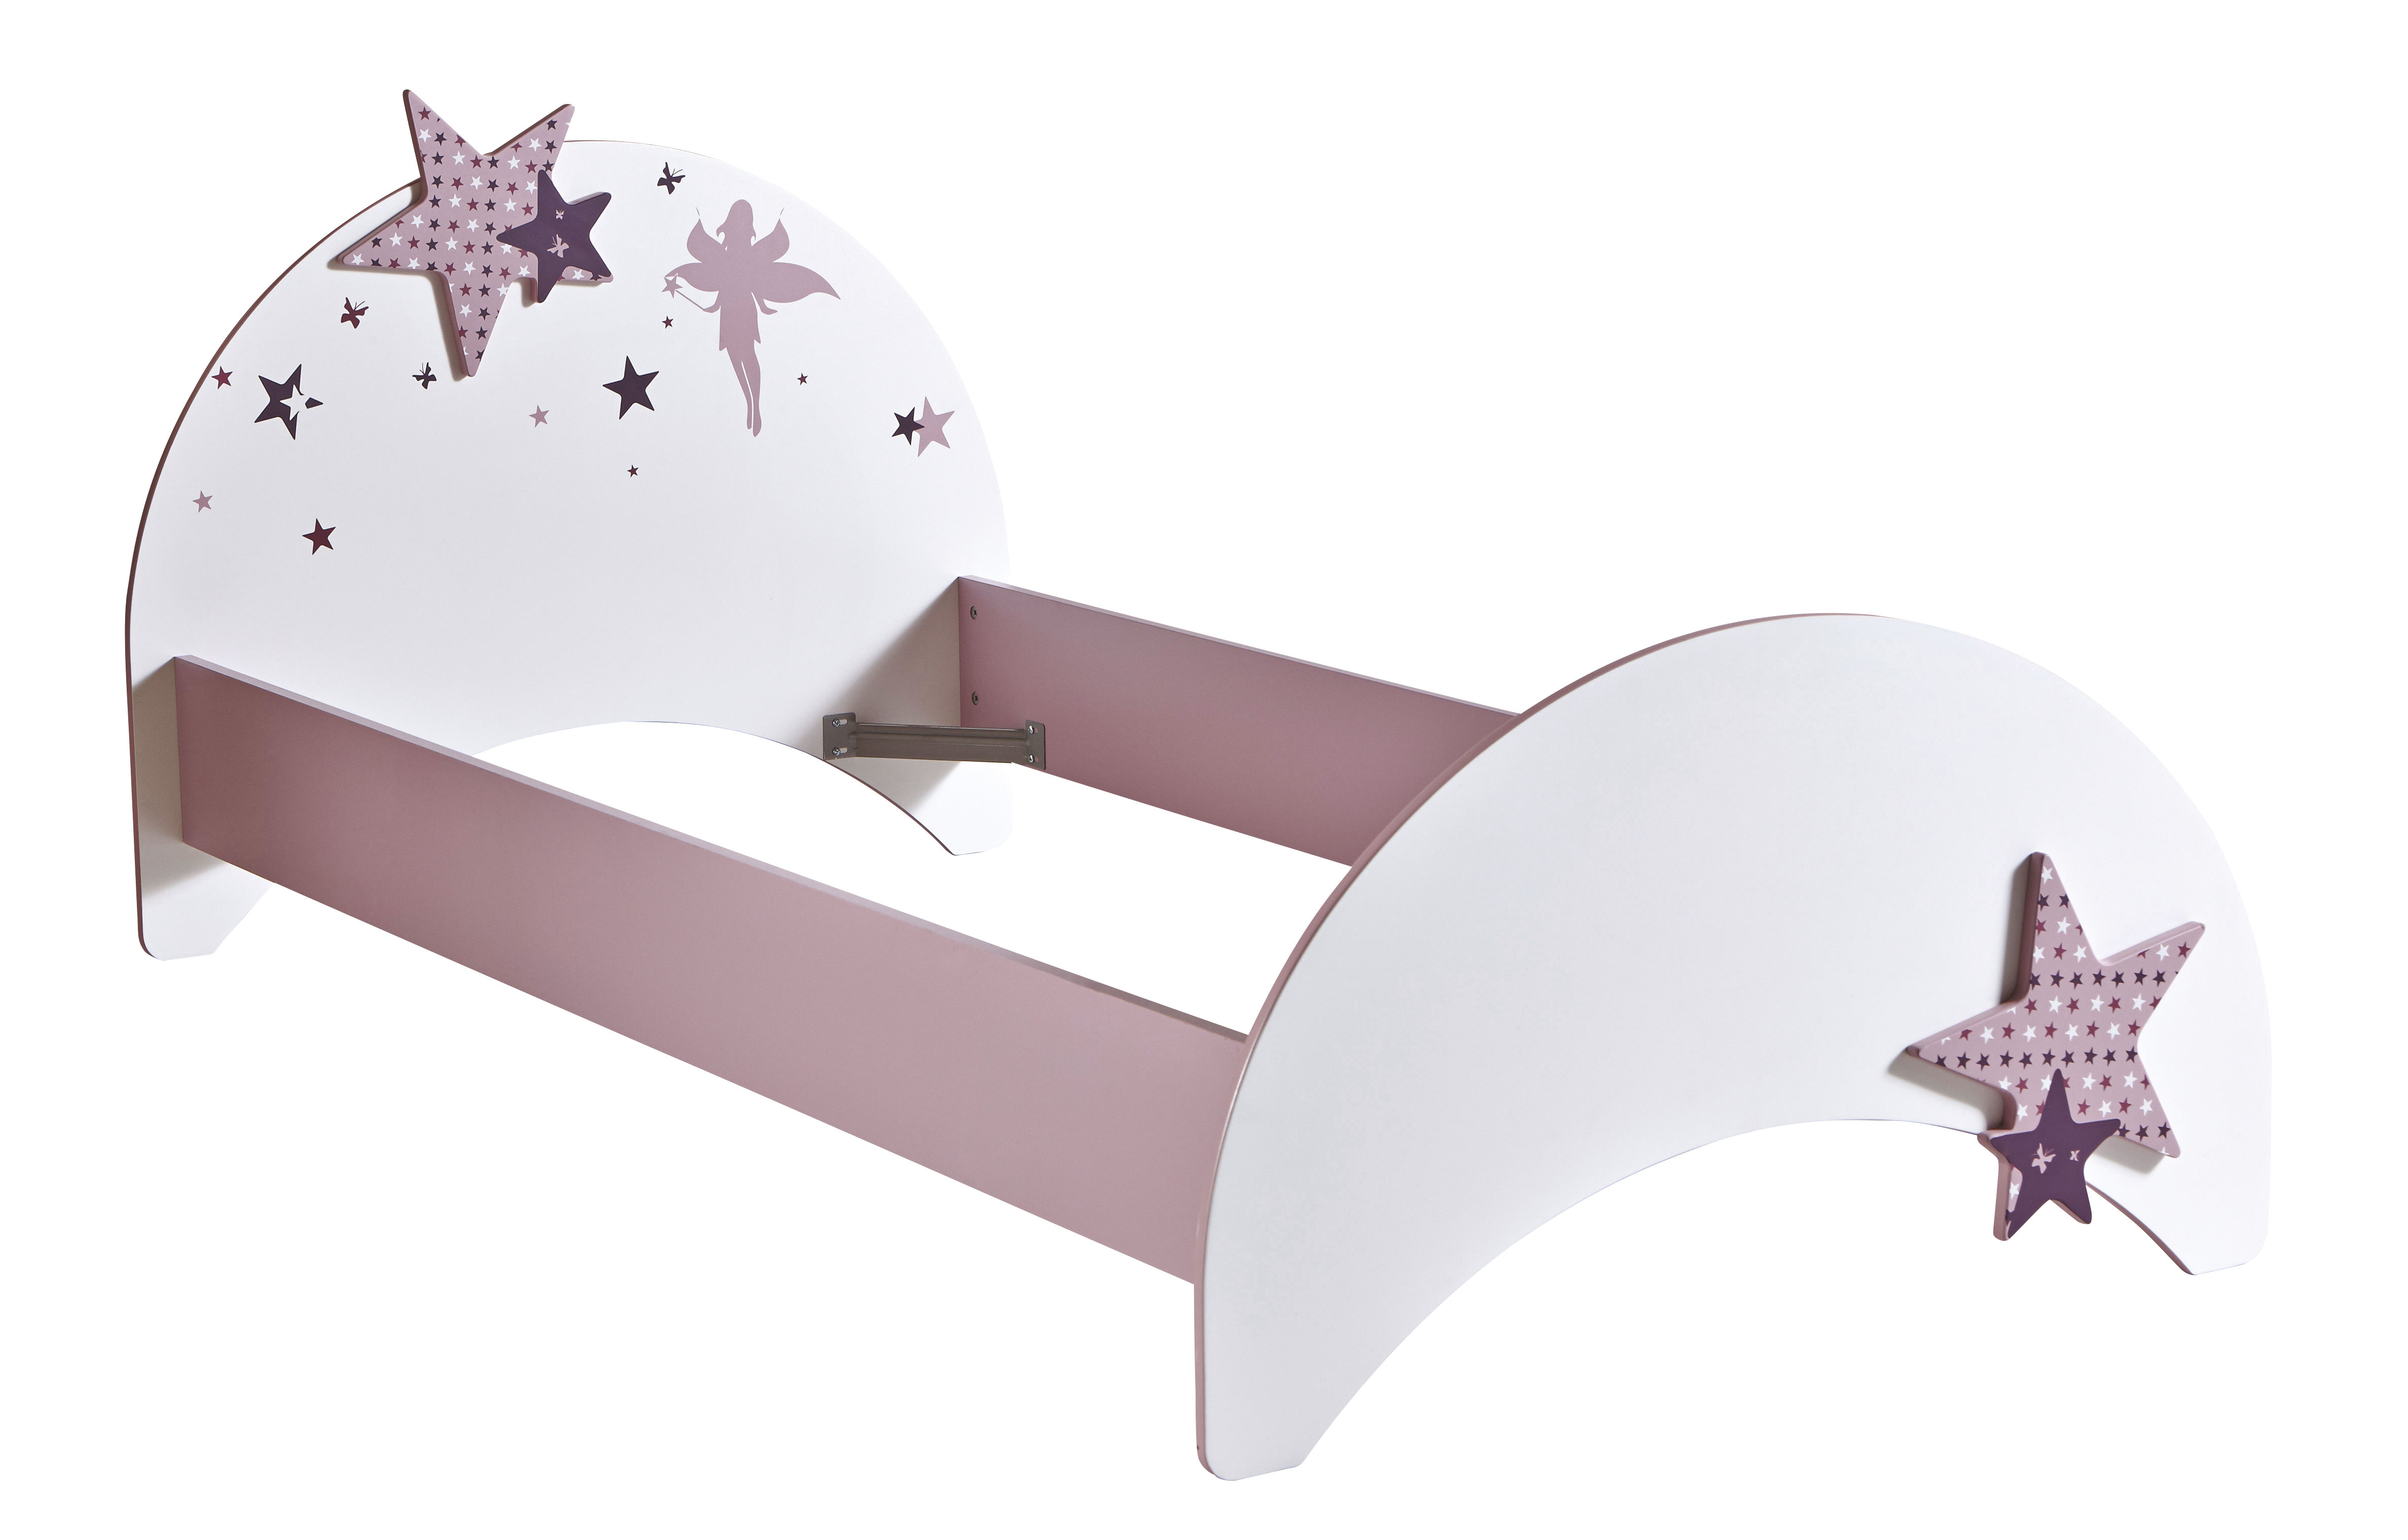 kinderbett m dchenbett jugendbett rosa bett prinzessin feen 90x200 cm juniorbett ebay. Black Bedroom Furniture Sets. Home Design Ideas